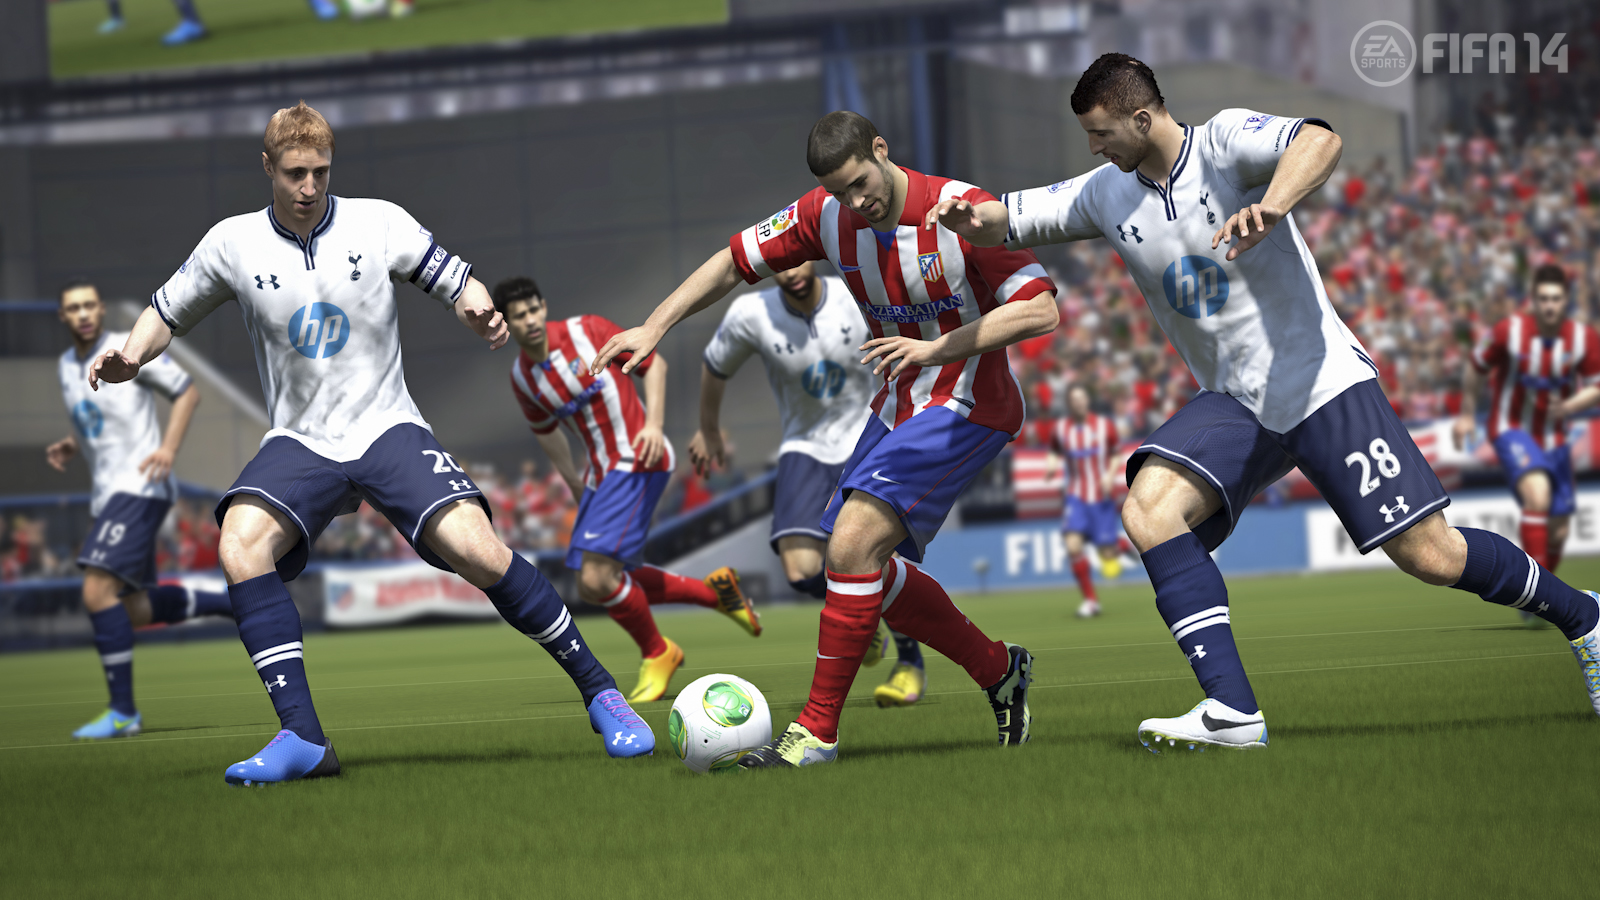 2013-09-23-fifa14_ps3_protecting_the_ball_wm.jpg